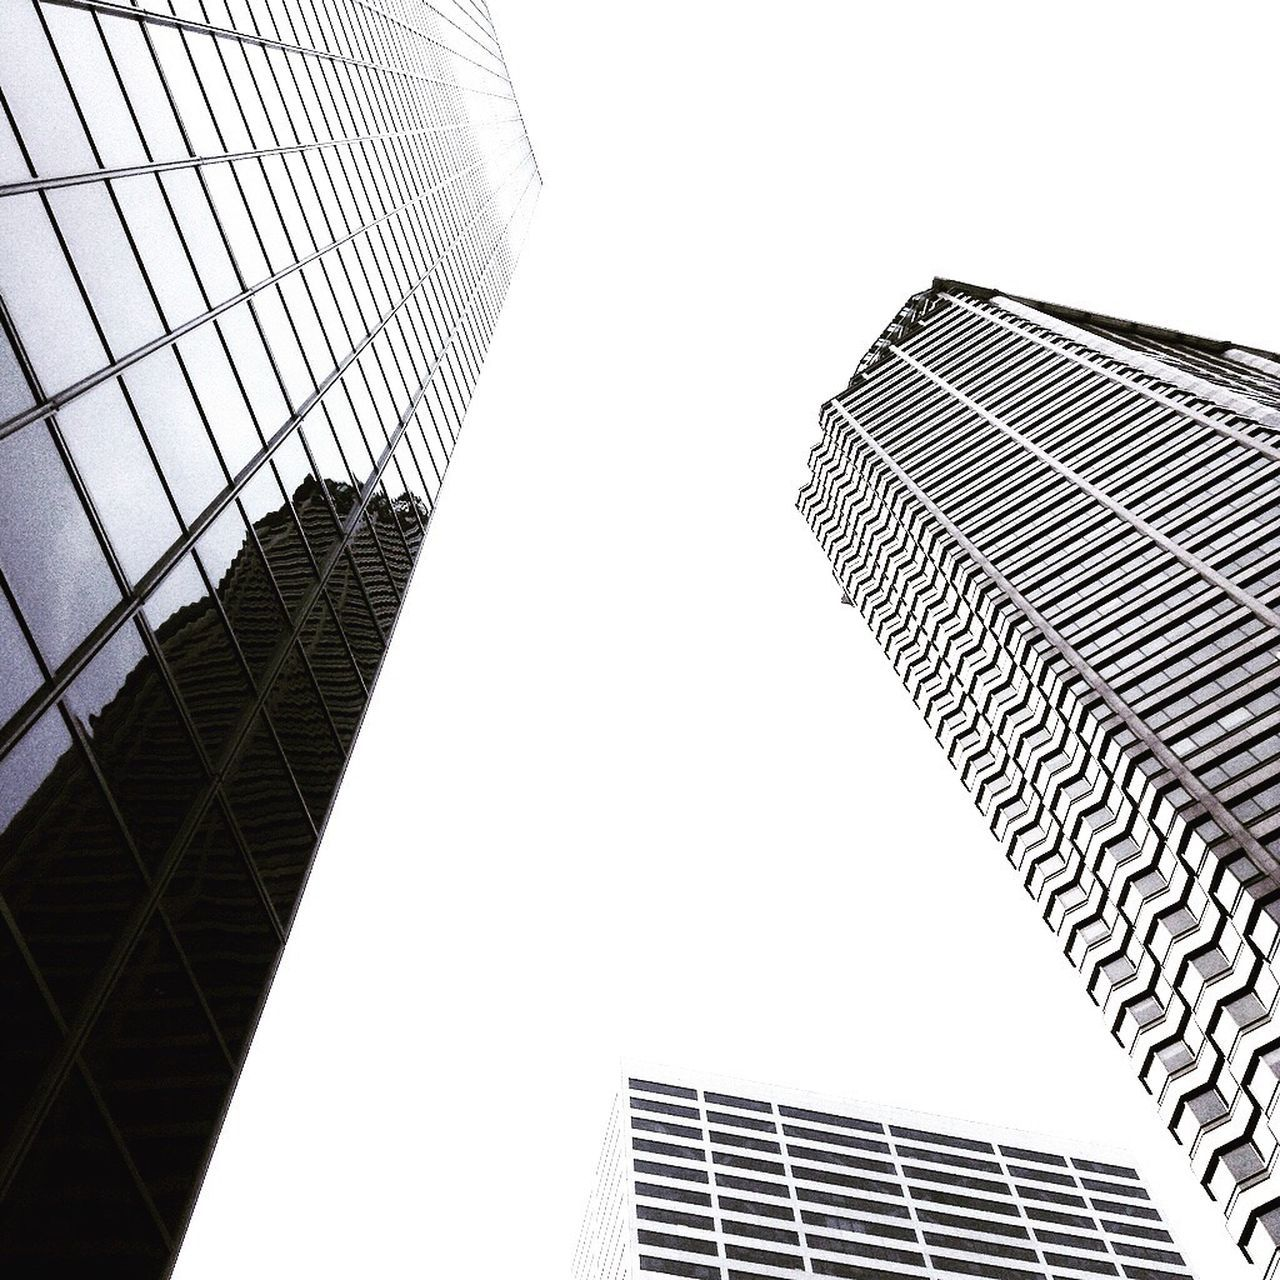 Low Angle View Architecture Building Exterior City Built Structure Skyscraper Modern Outdoors Office Building Exterior Clear Sky Day No People Corporate Business Sky Look Up And Thrive Lookingup Seattle Washington State PNW Black & White White Background High Contrast EyeEmNewHere